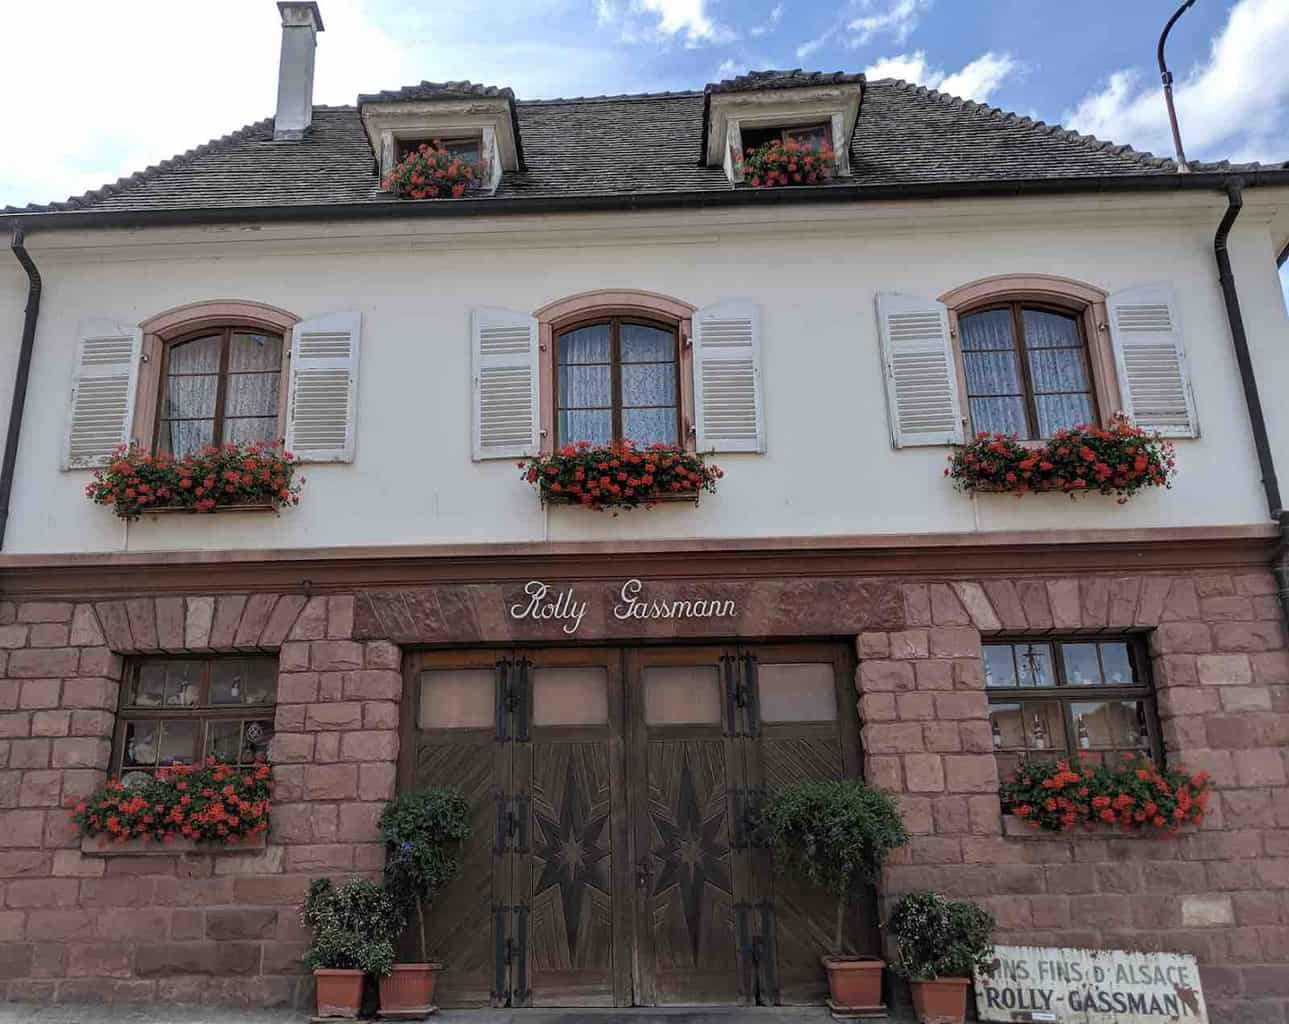 Rolly Gassman Gourmet Food and Wine in Alsace France